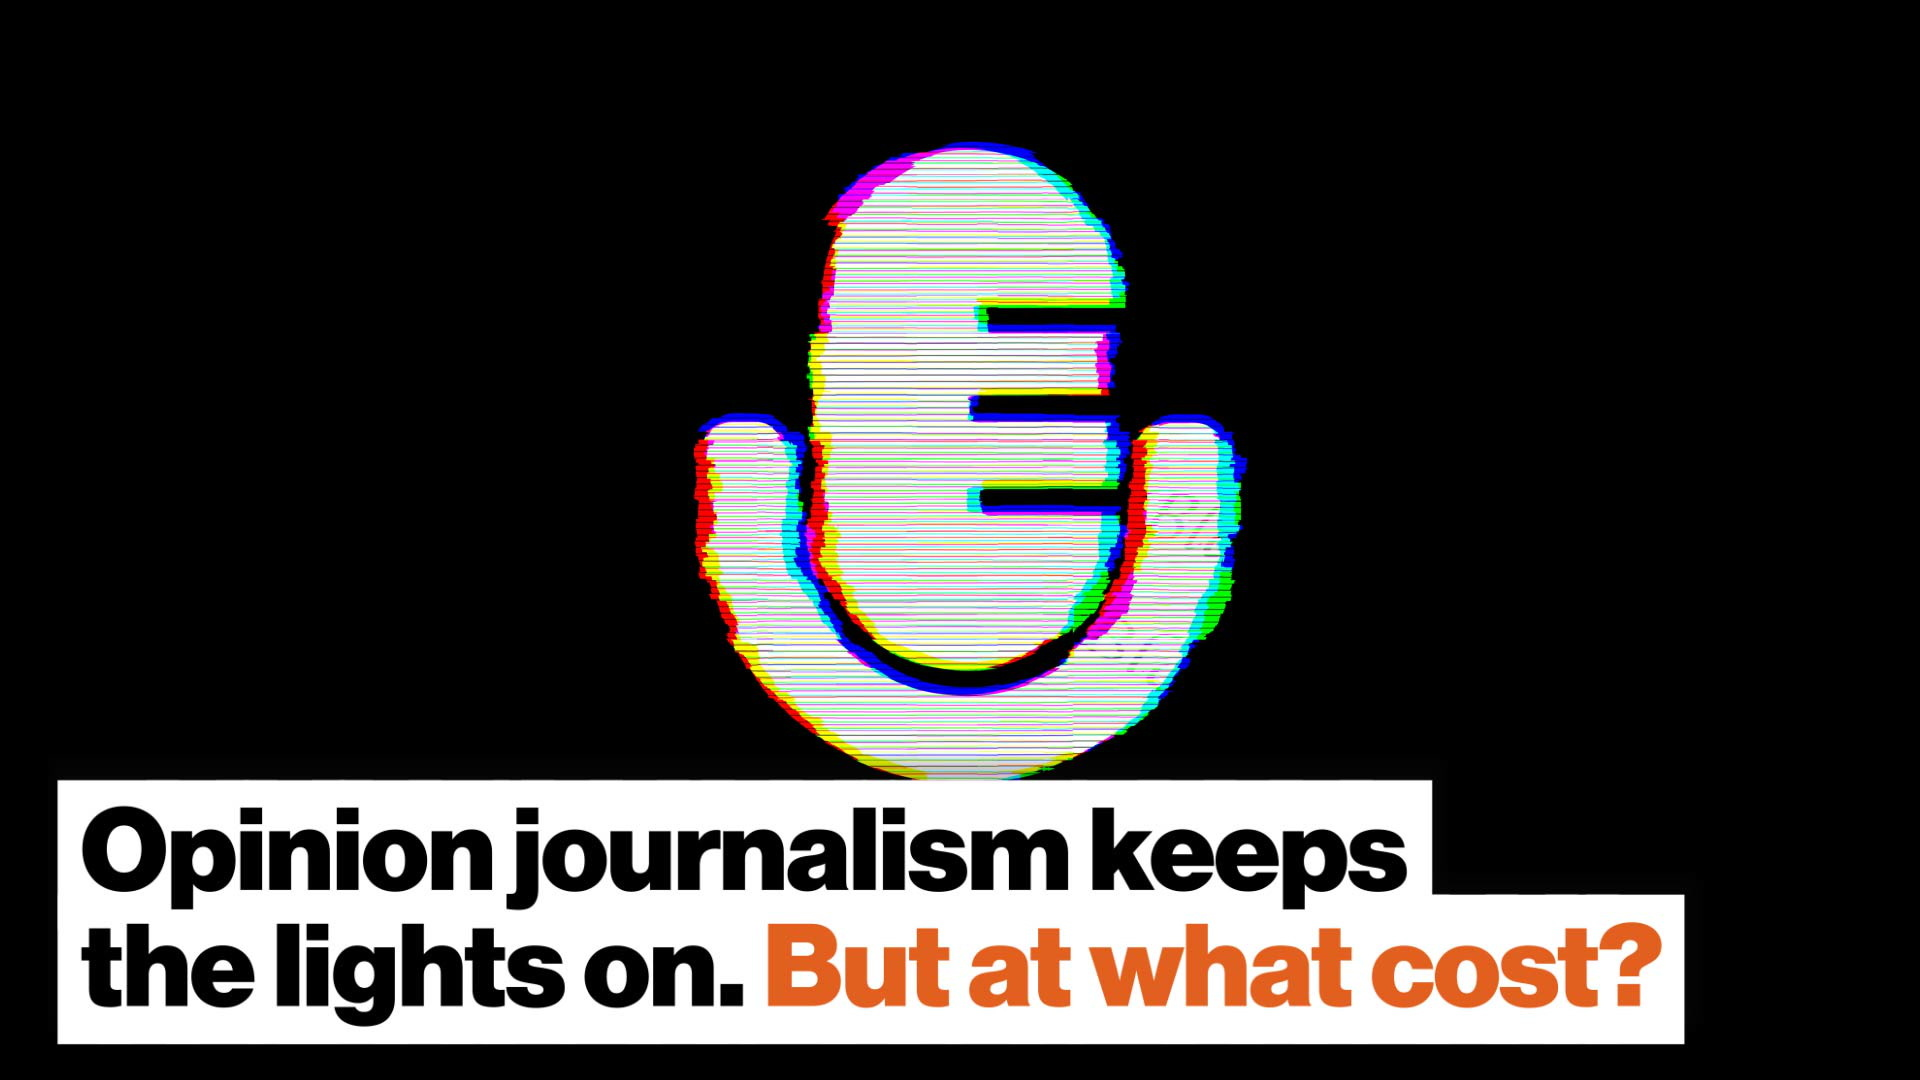 Opinion journalism keeps the lights on. But at what cost?